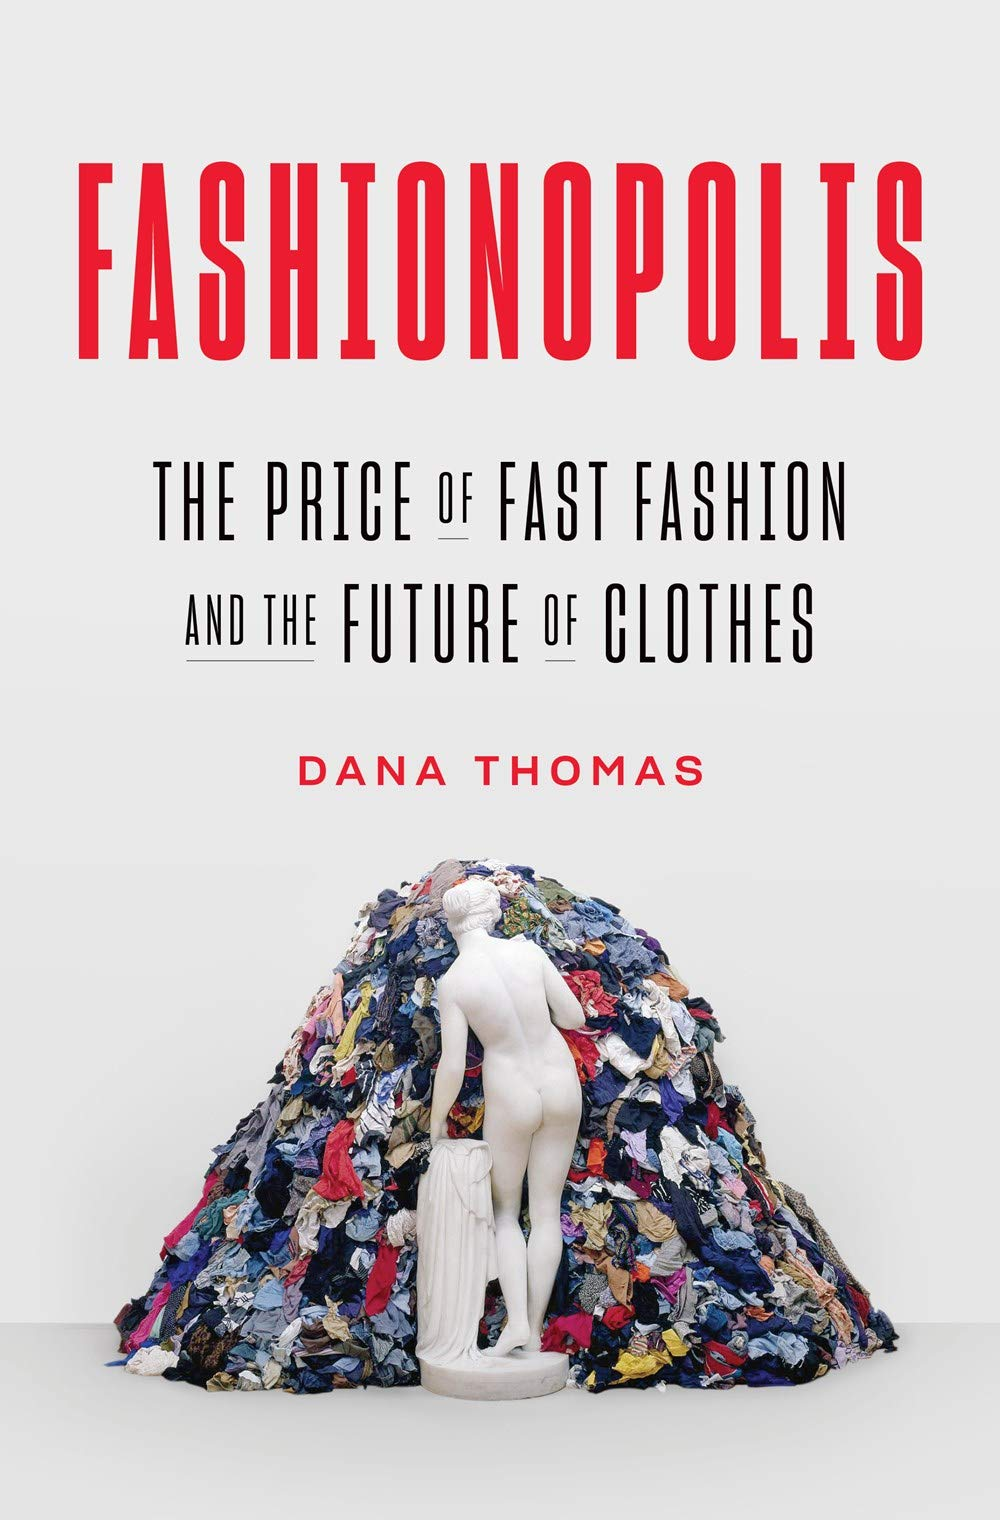 Fashionopolis Price Fashion Future Clothes product image